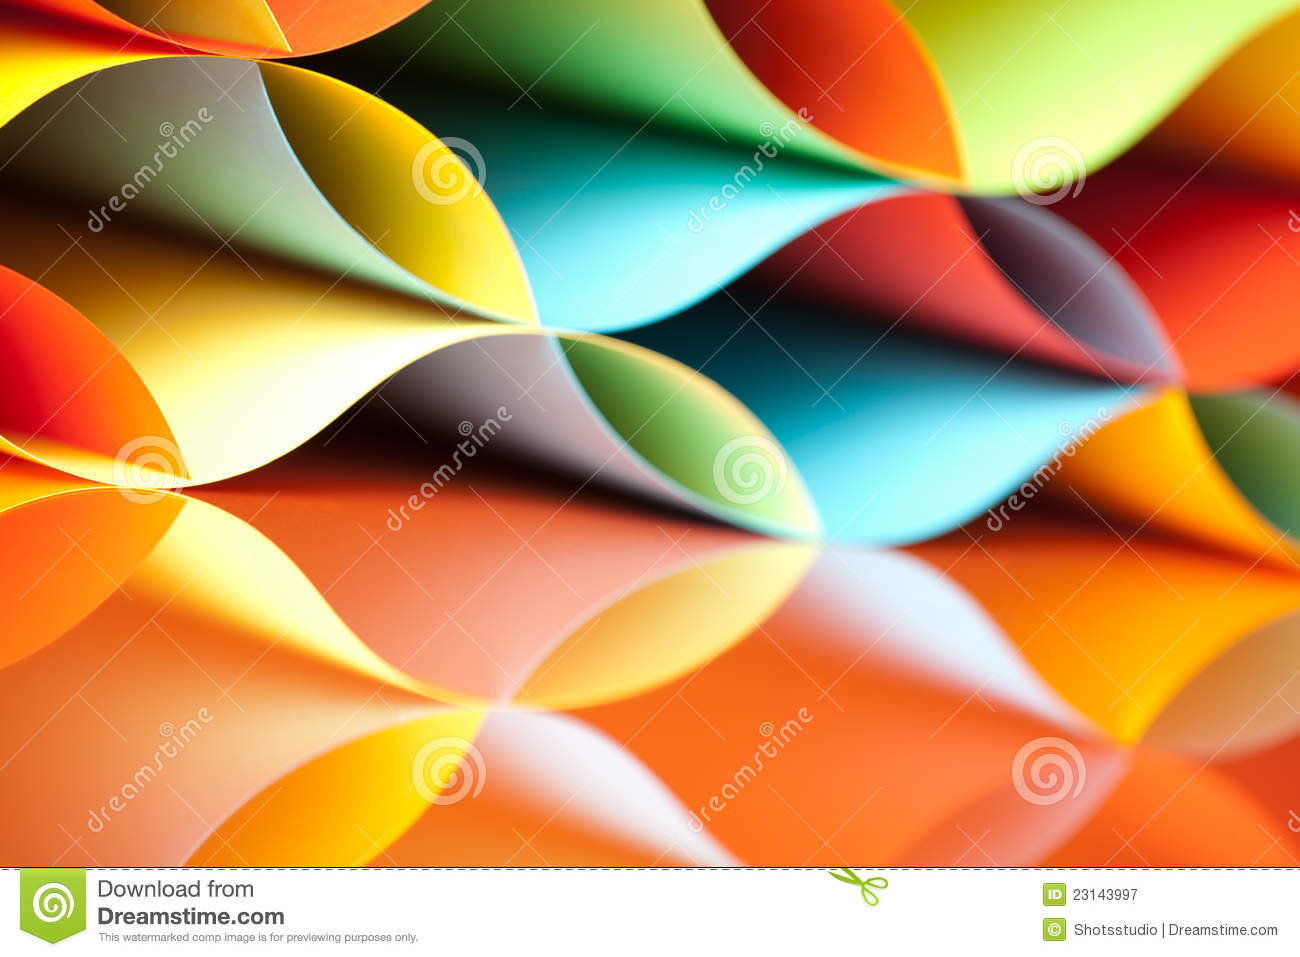 Colorful Sheets Paper With Mirror Reflexions Stock Image - Image of ...